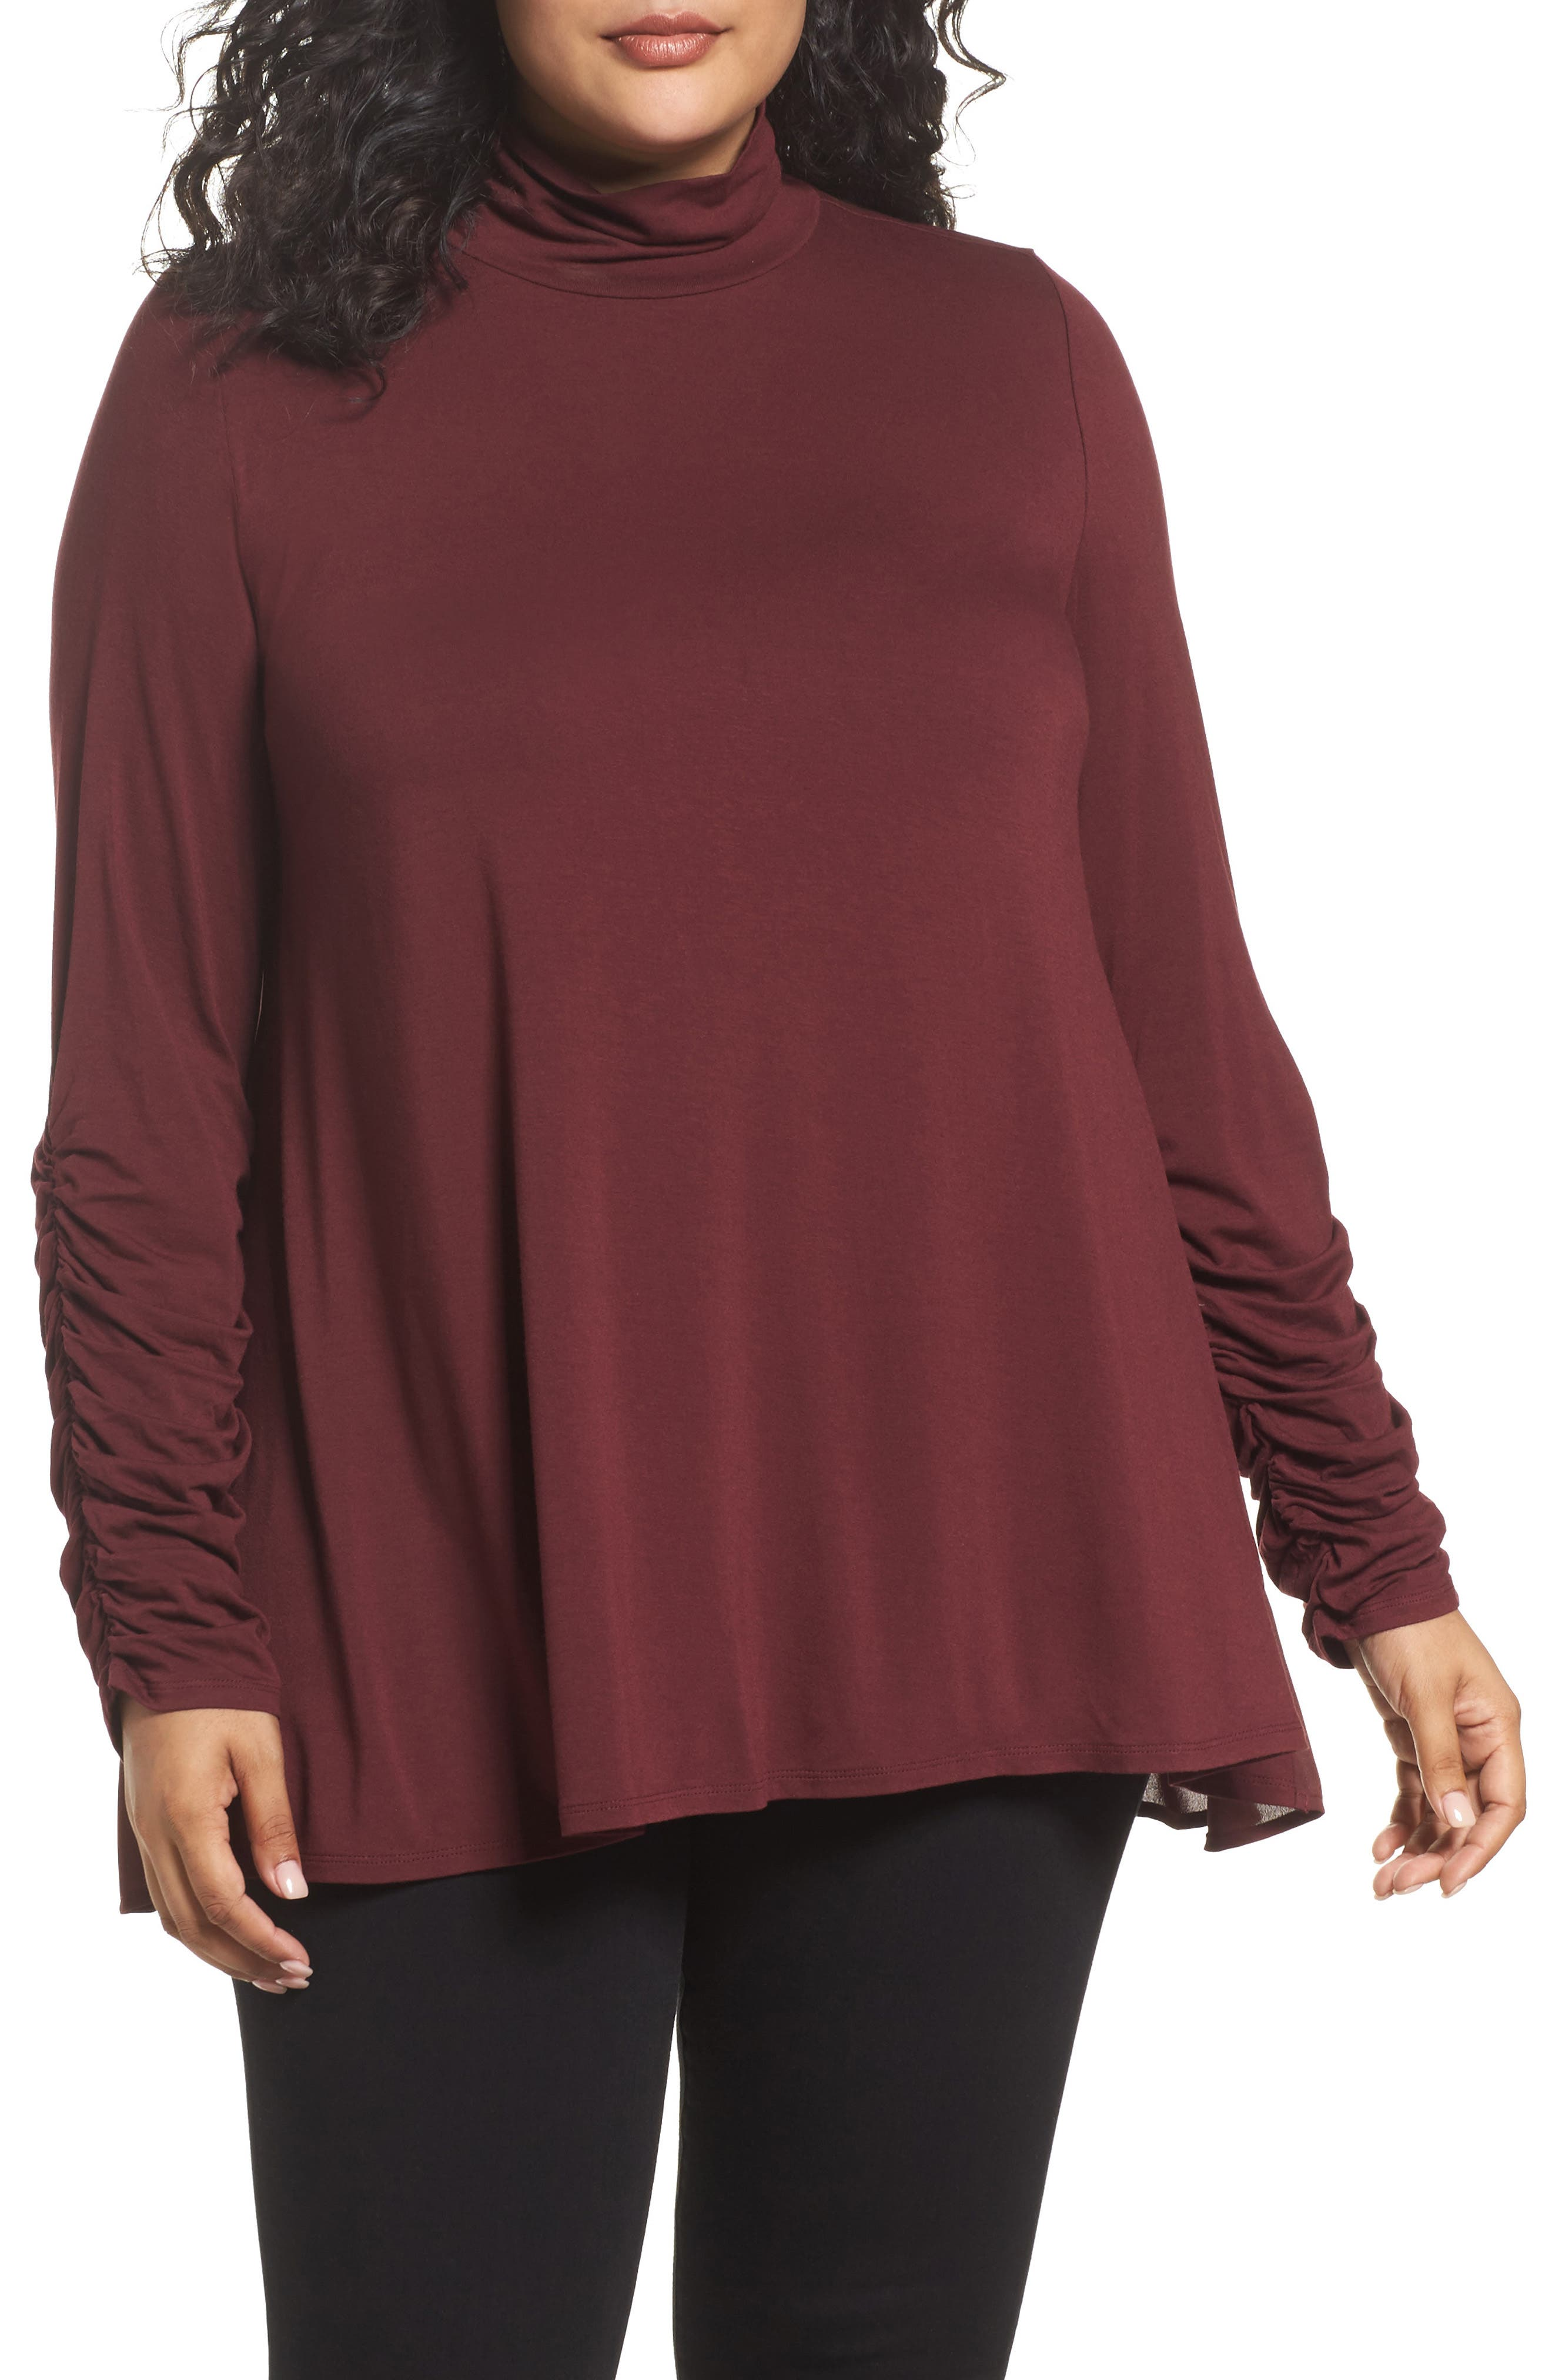 Ruched Sleeve Turtleneck Top,                         Main,                         color, 018